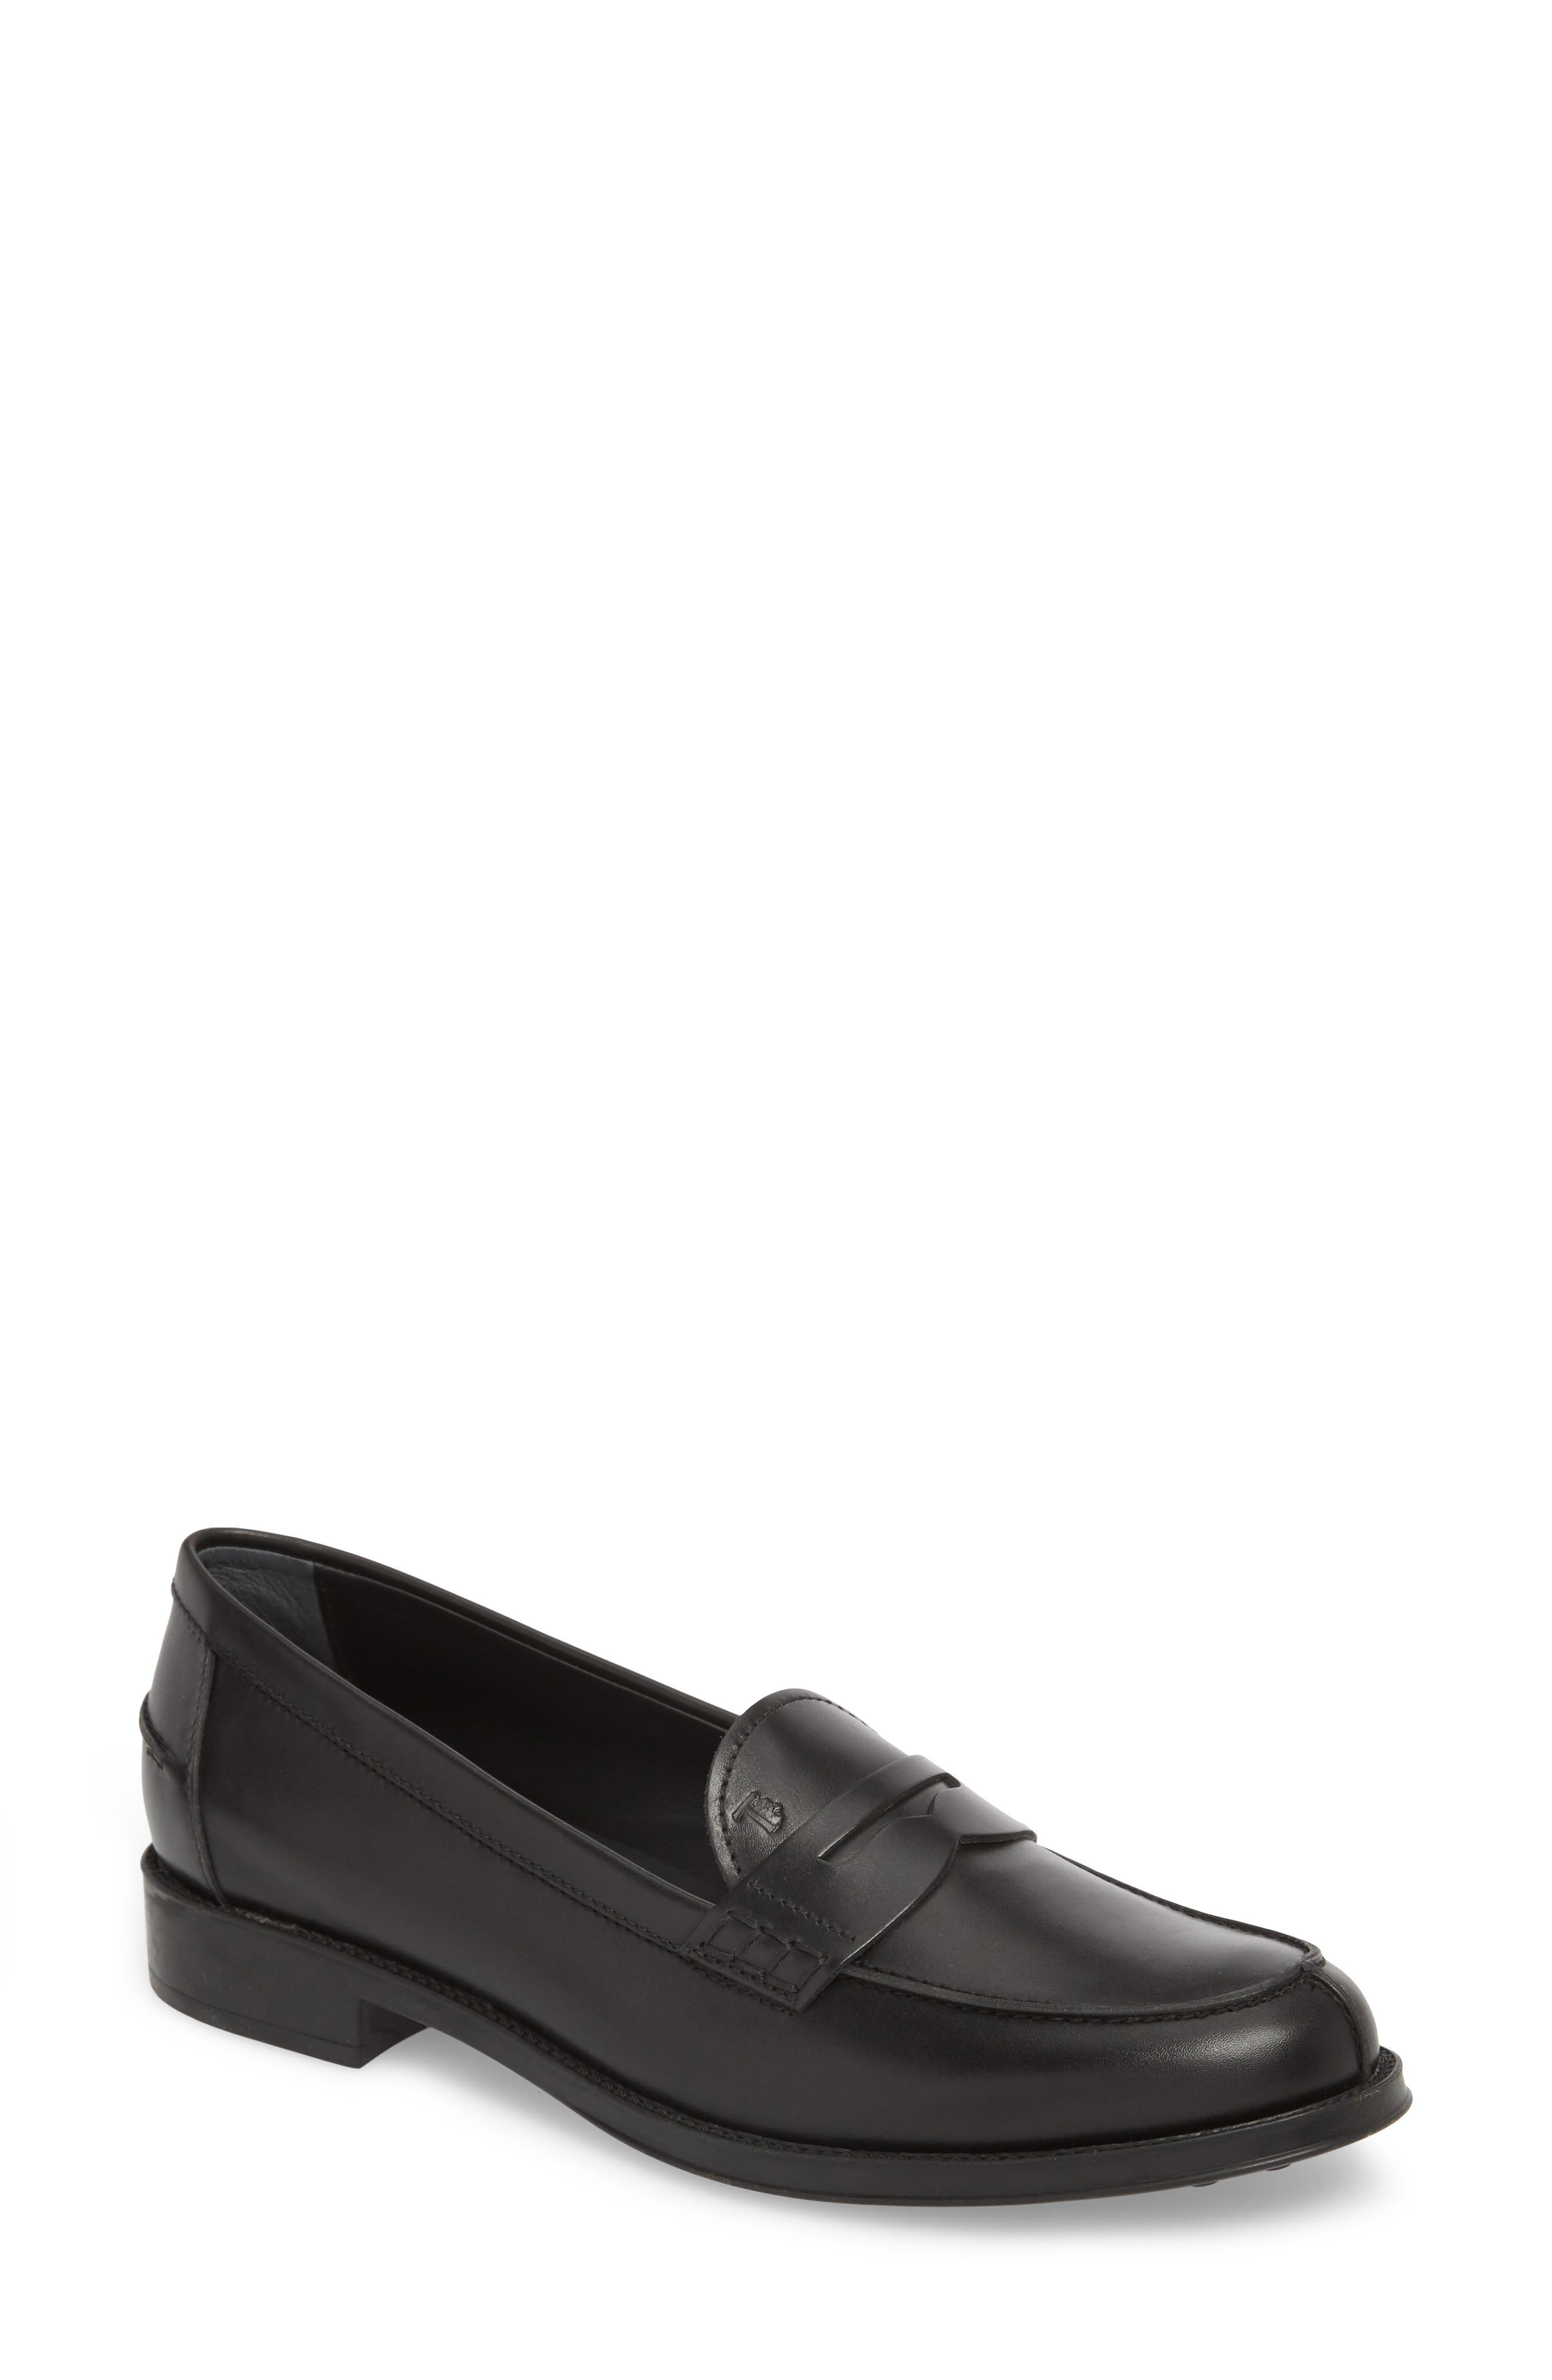 Penny Loafer,                             Main thumbnail 1, color,                             BLACK